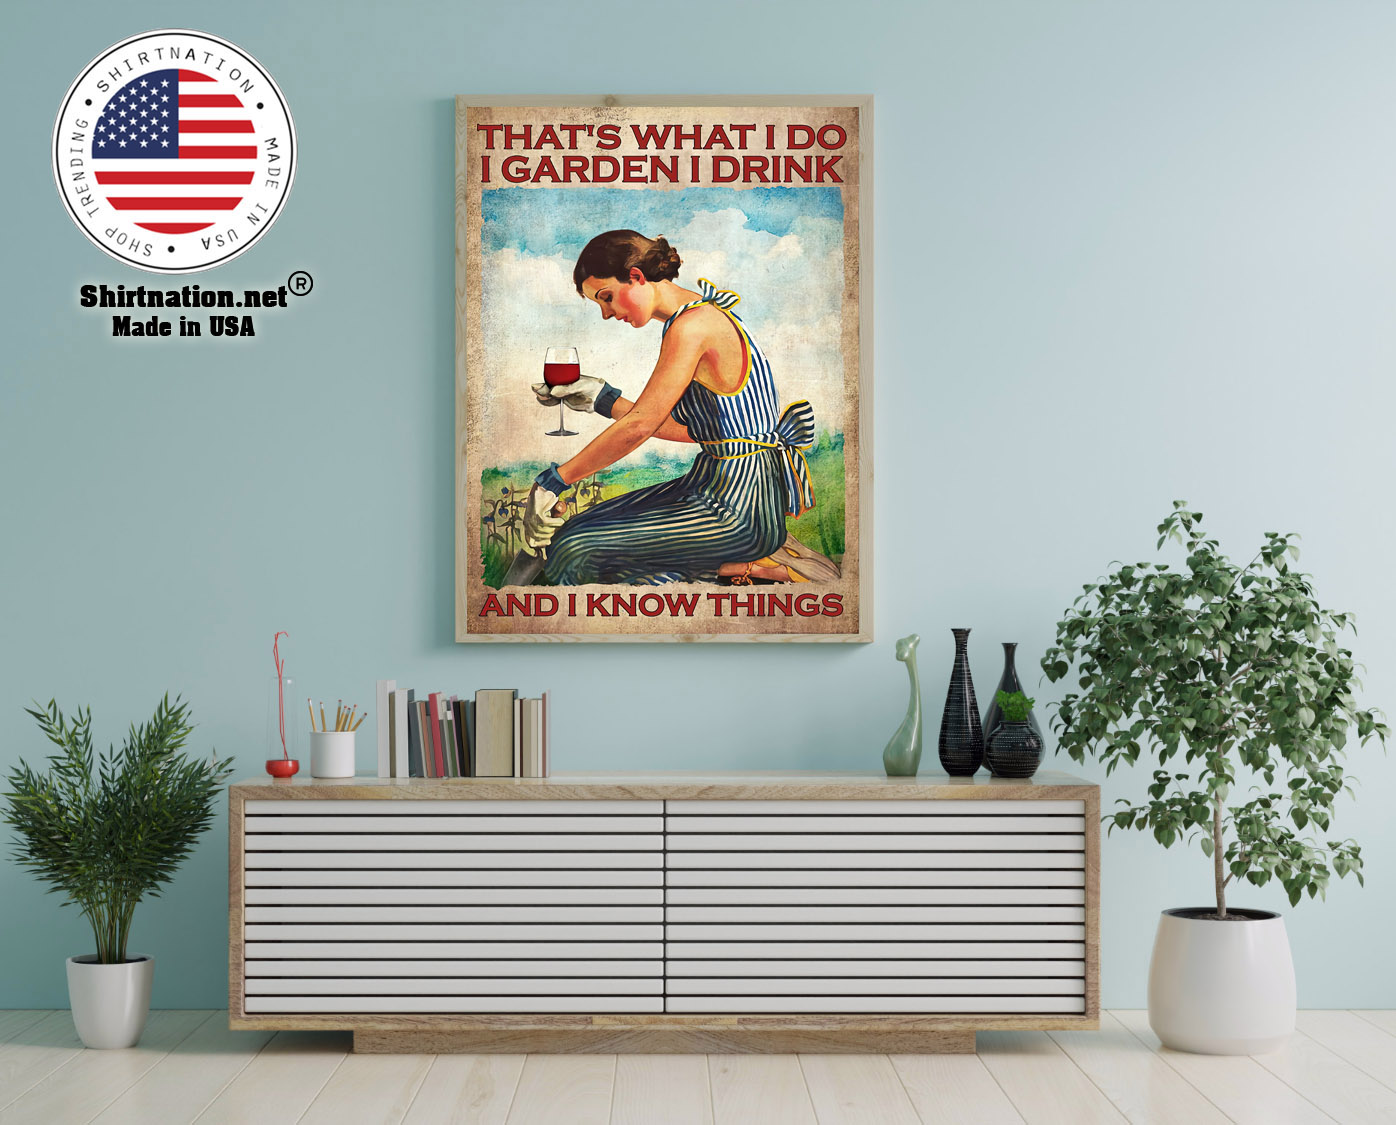 Wine Thats what I do I garden I drink and I know things poster 12 1